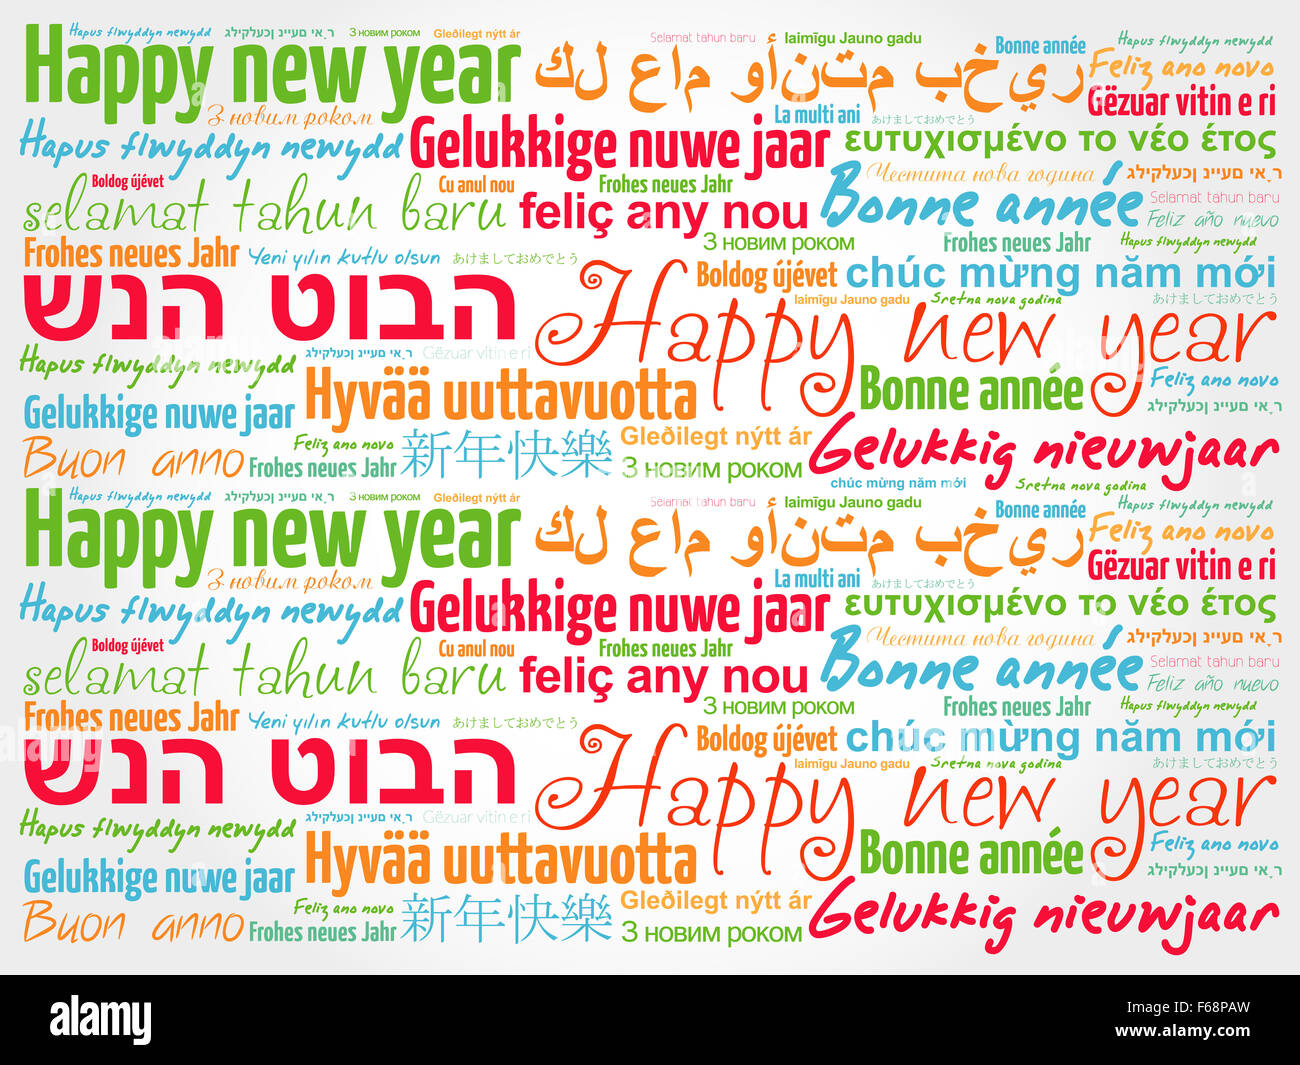 Happy new year in different languages celebration word cloud happy new year in different languages celebration word cloud greeting card kristyandbryce Image collections